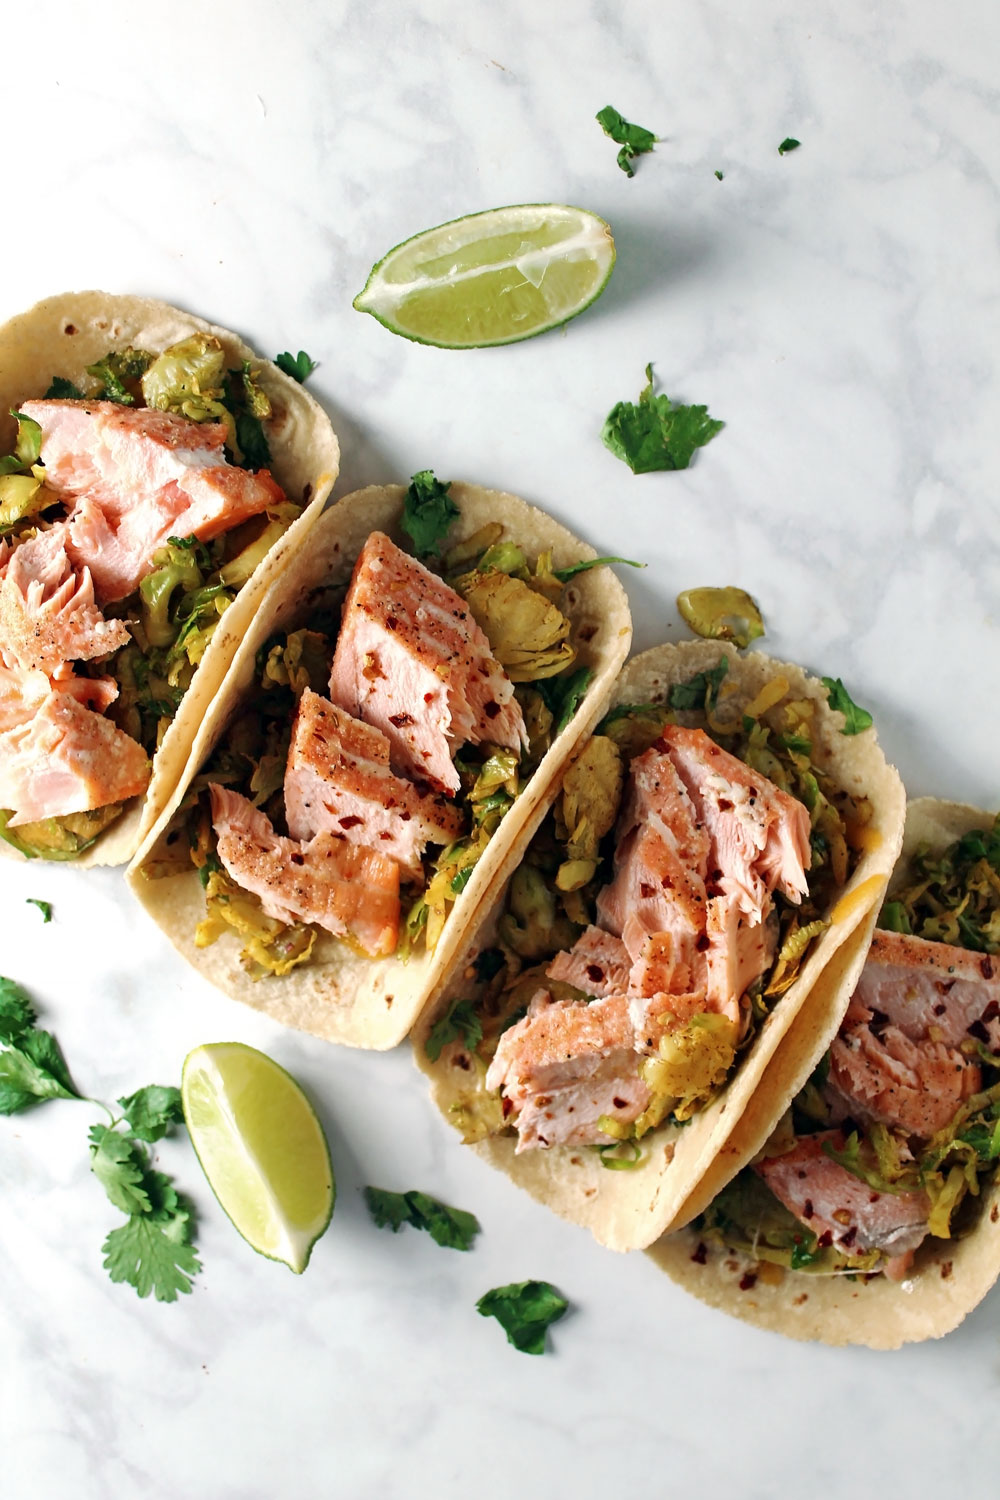 Salmon And Shredded Brussels Sprout Tacos Spinach For